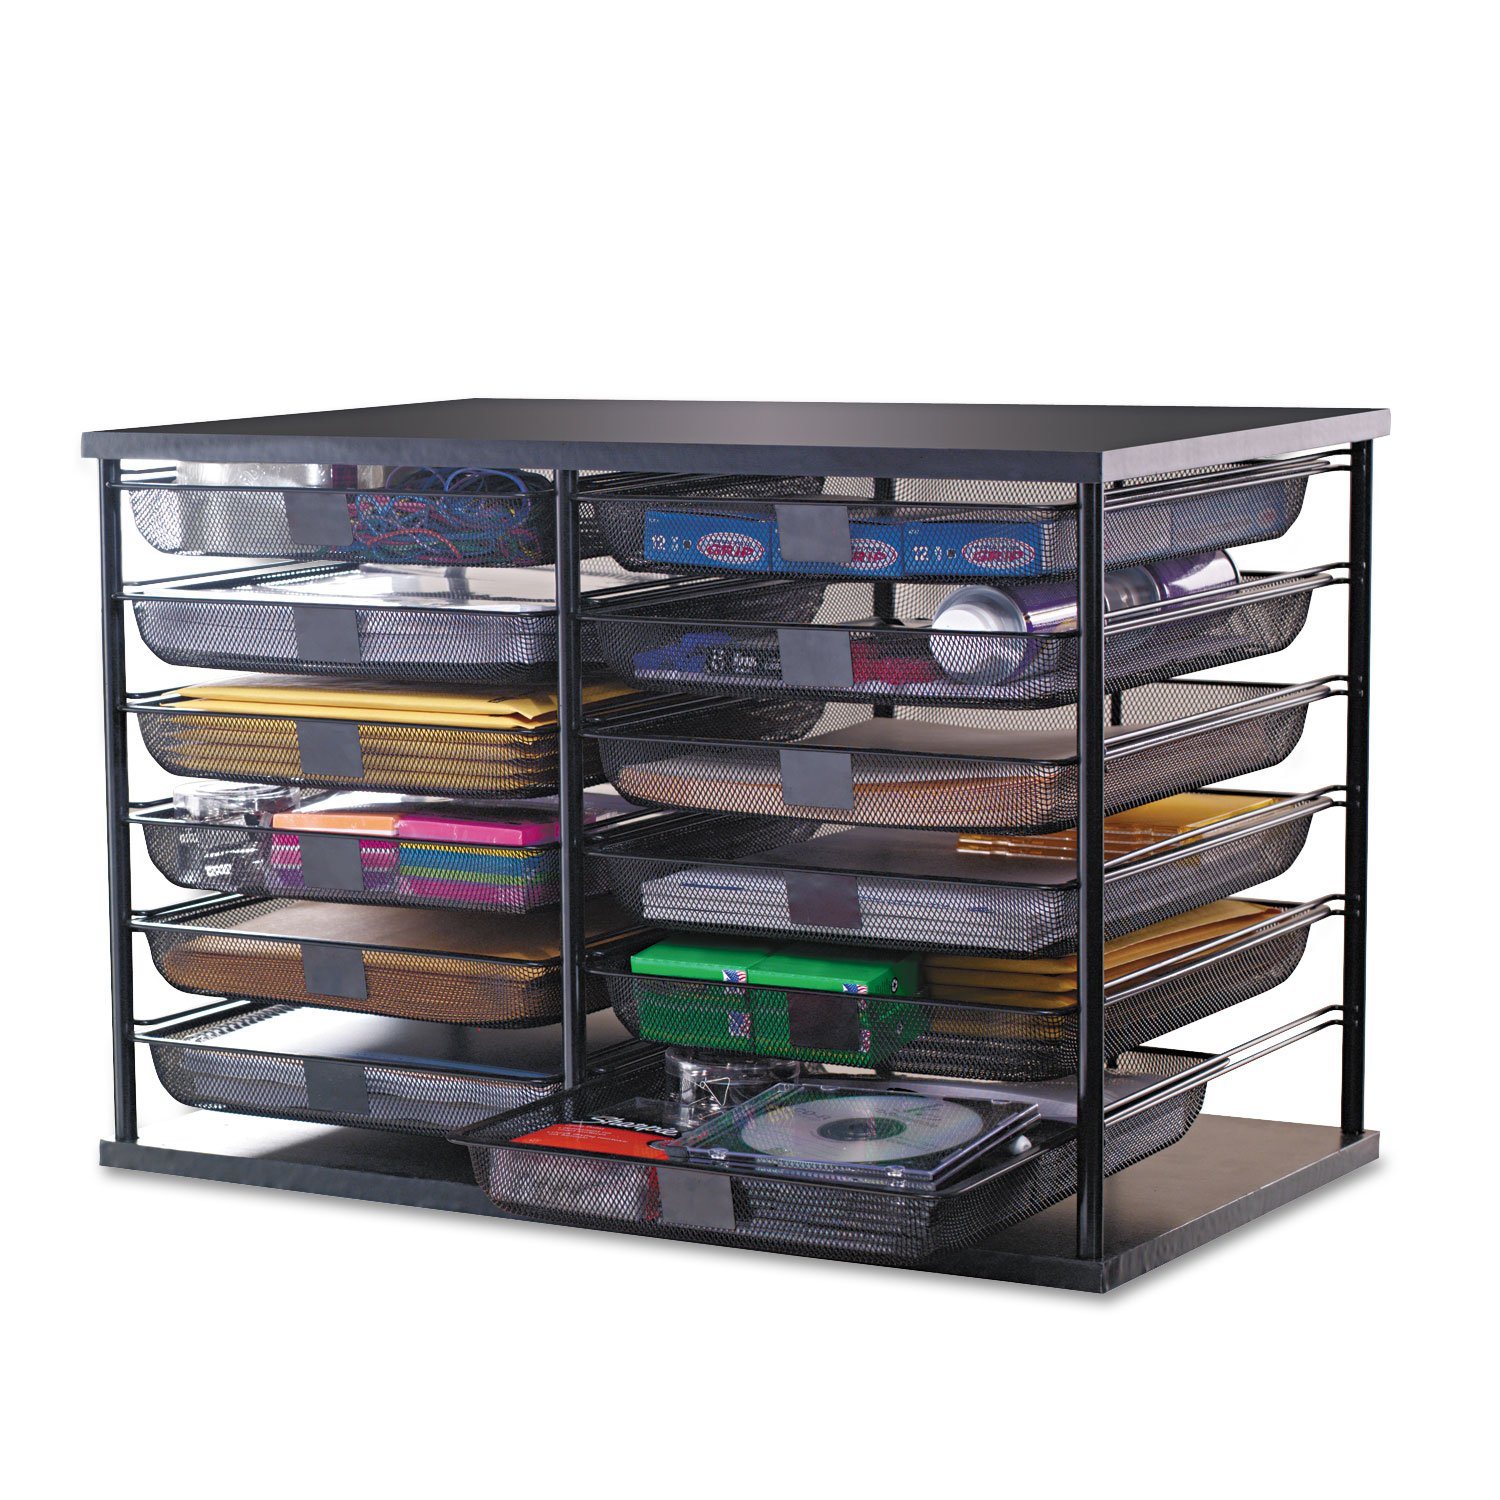 Rubbermaid 1735746 12-Compartment Organizer by Rubbermaid (Image #1)